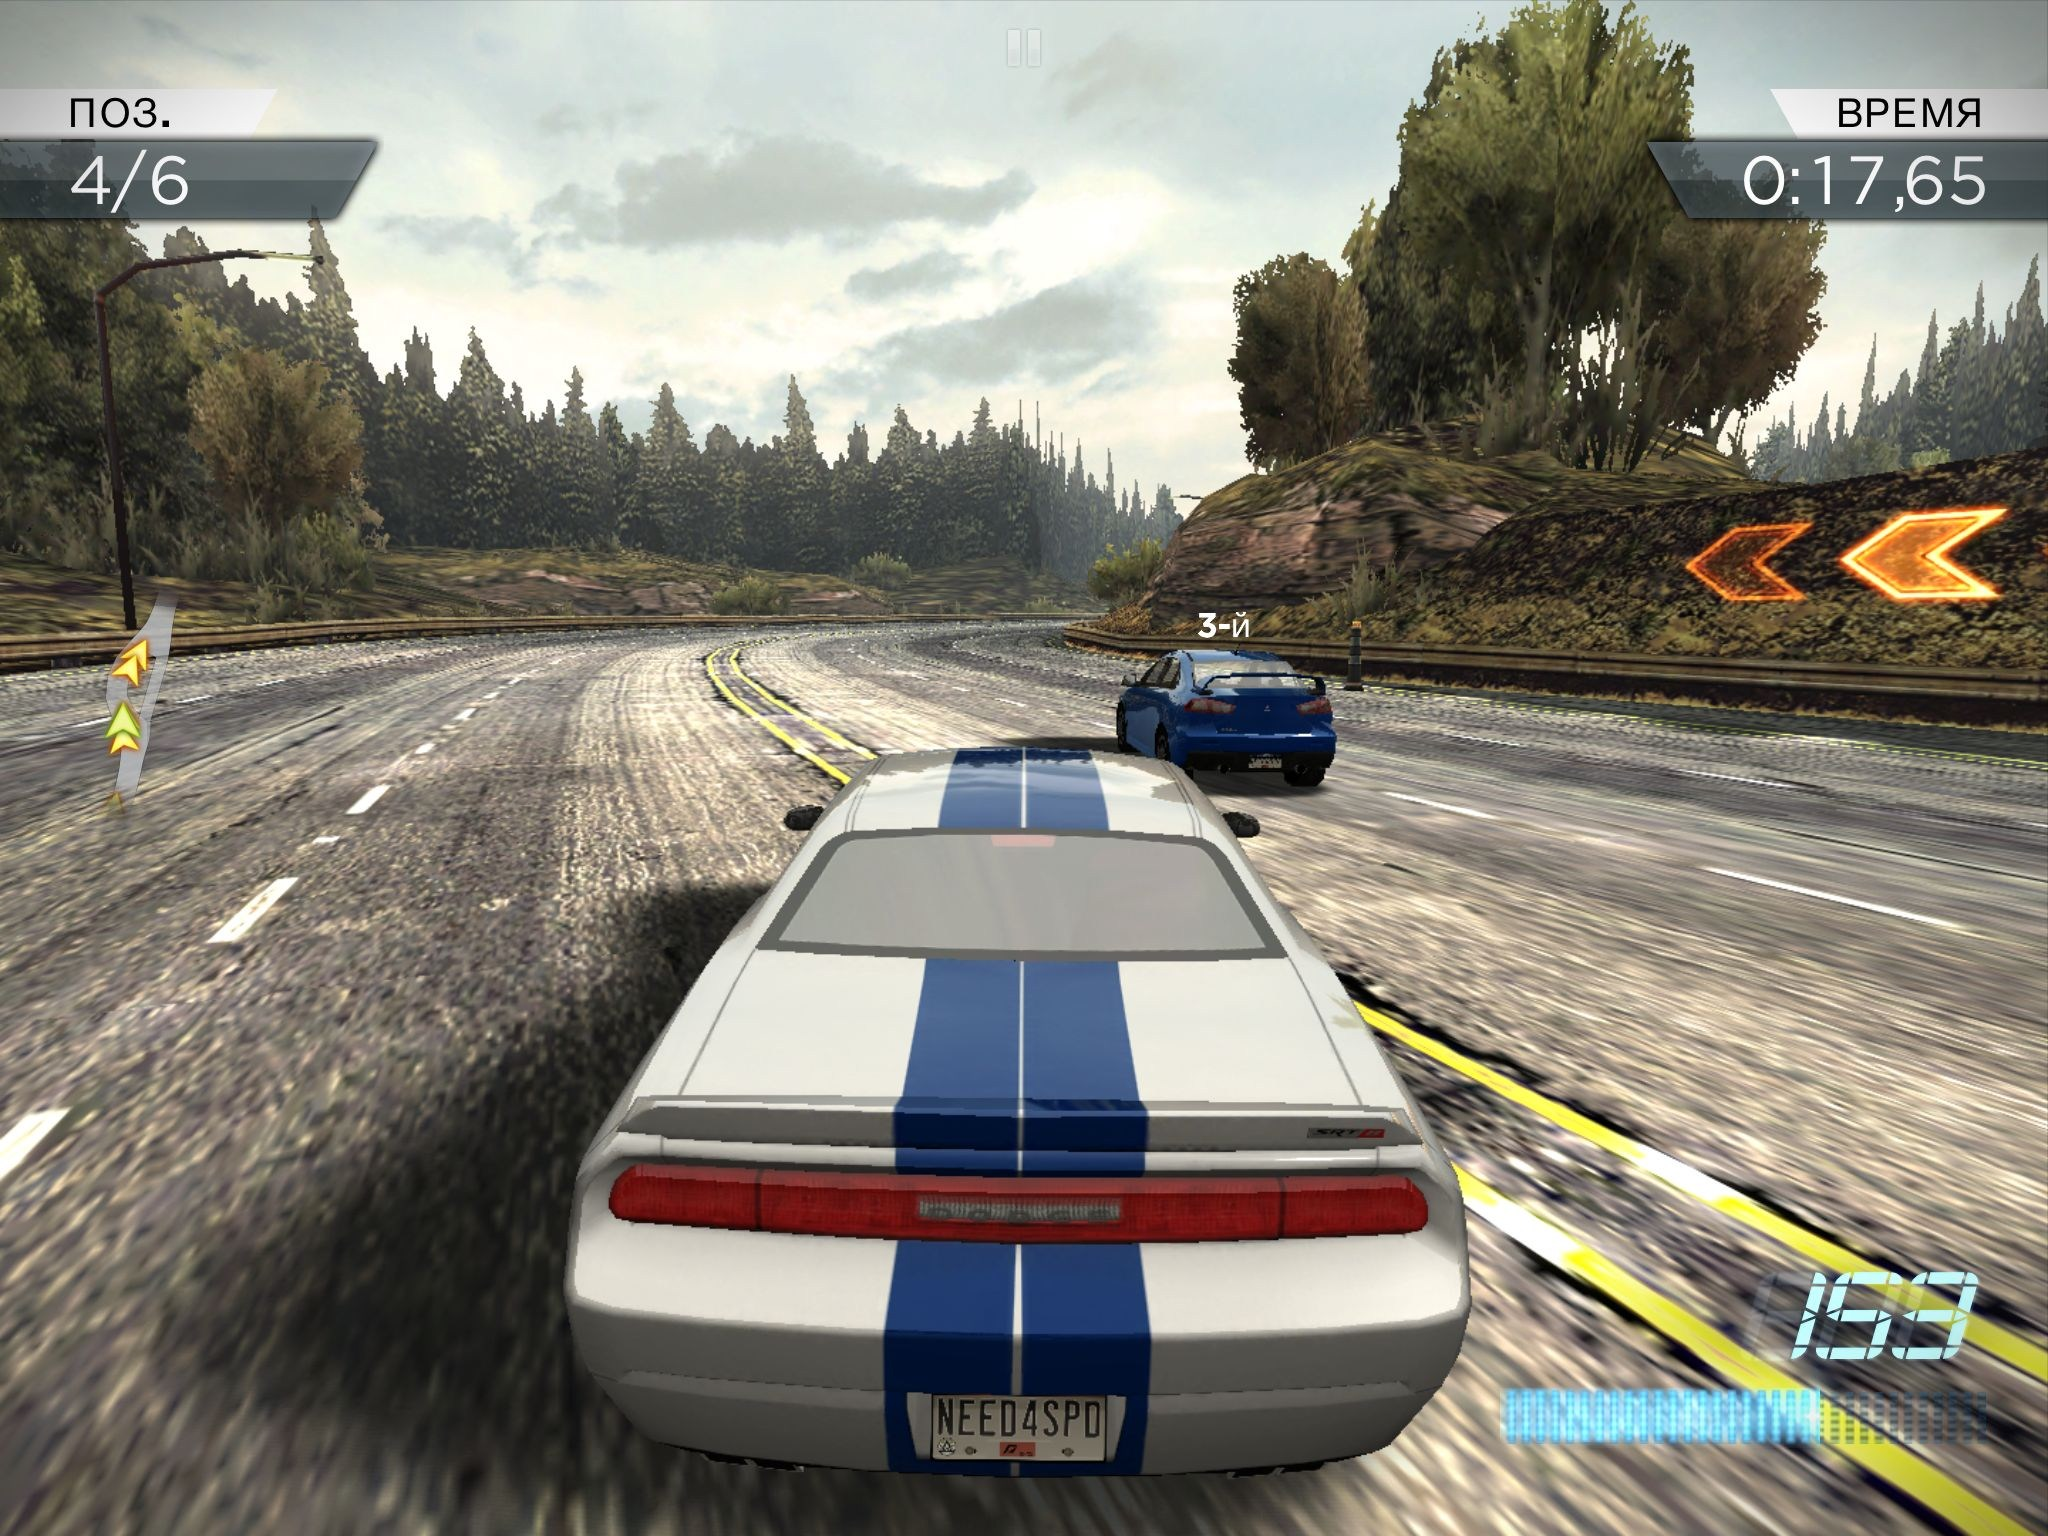 Nfs most wanted apk старый